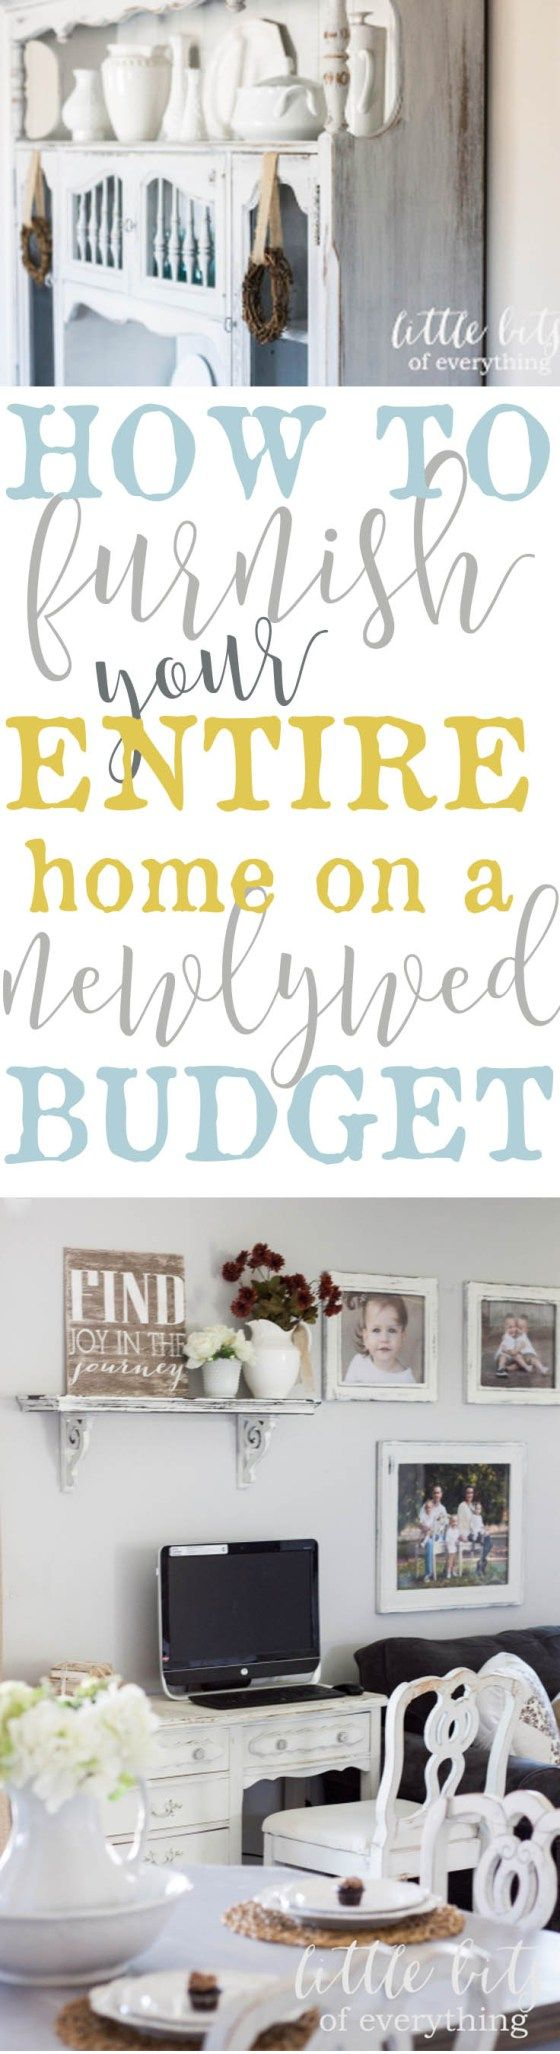 Furnish Your Entire House Virtually For Free, On A Newlywed Budget! I Did It